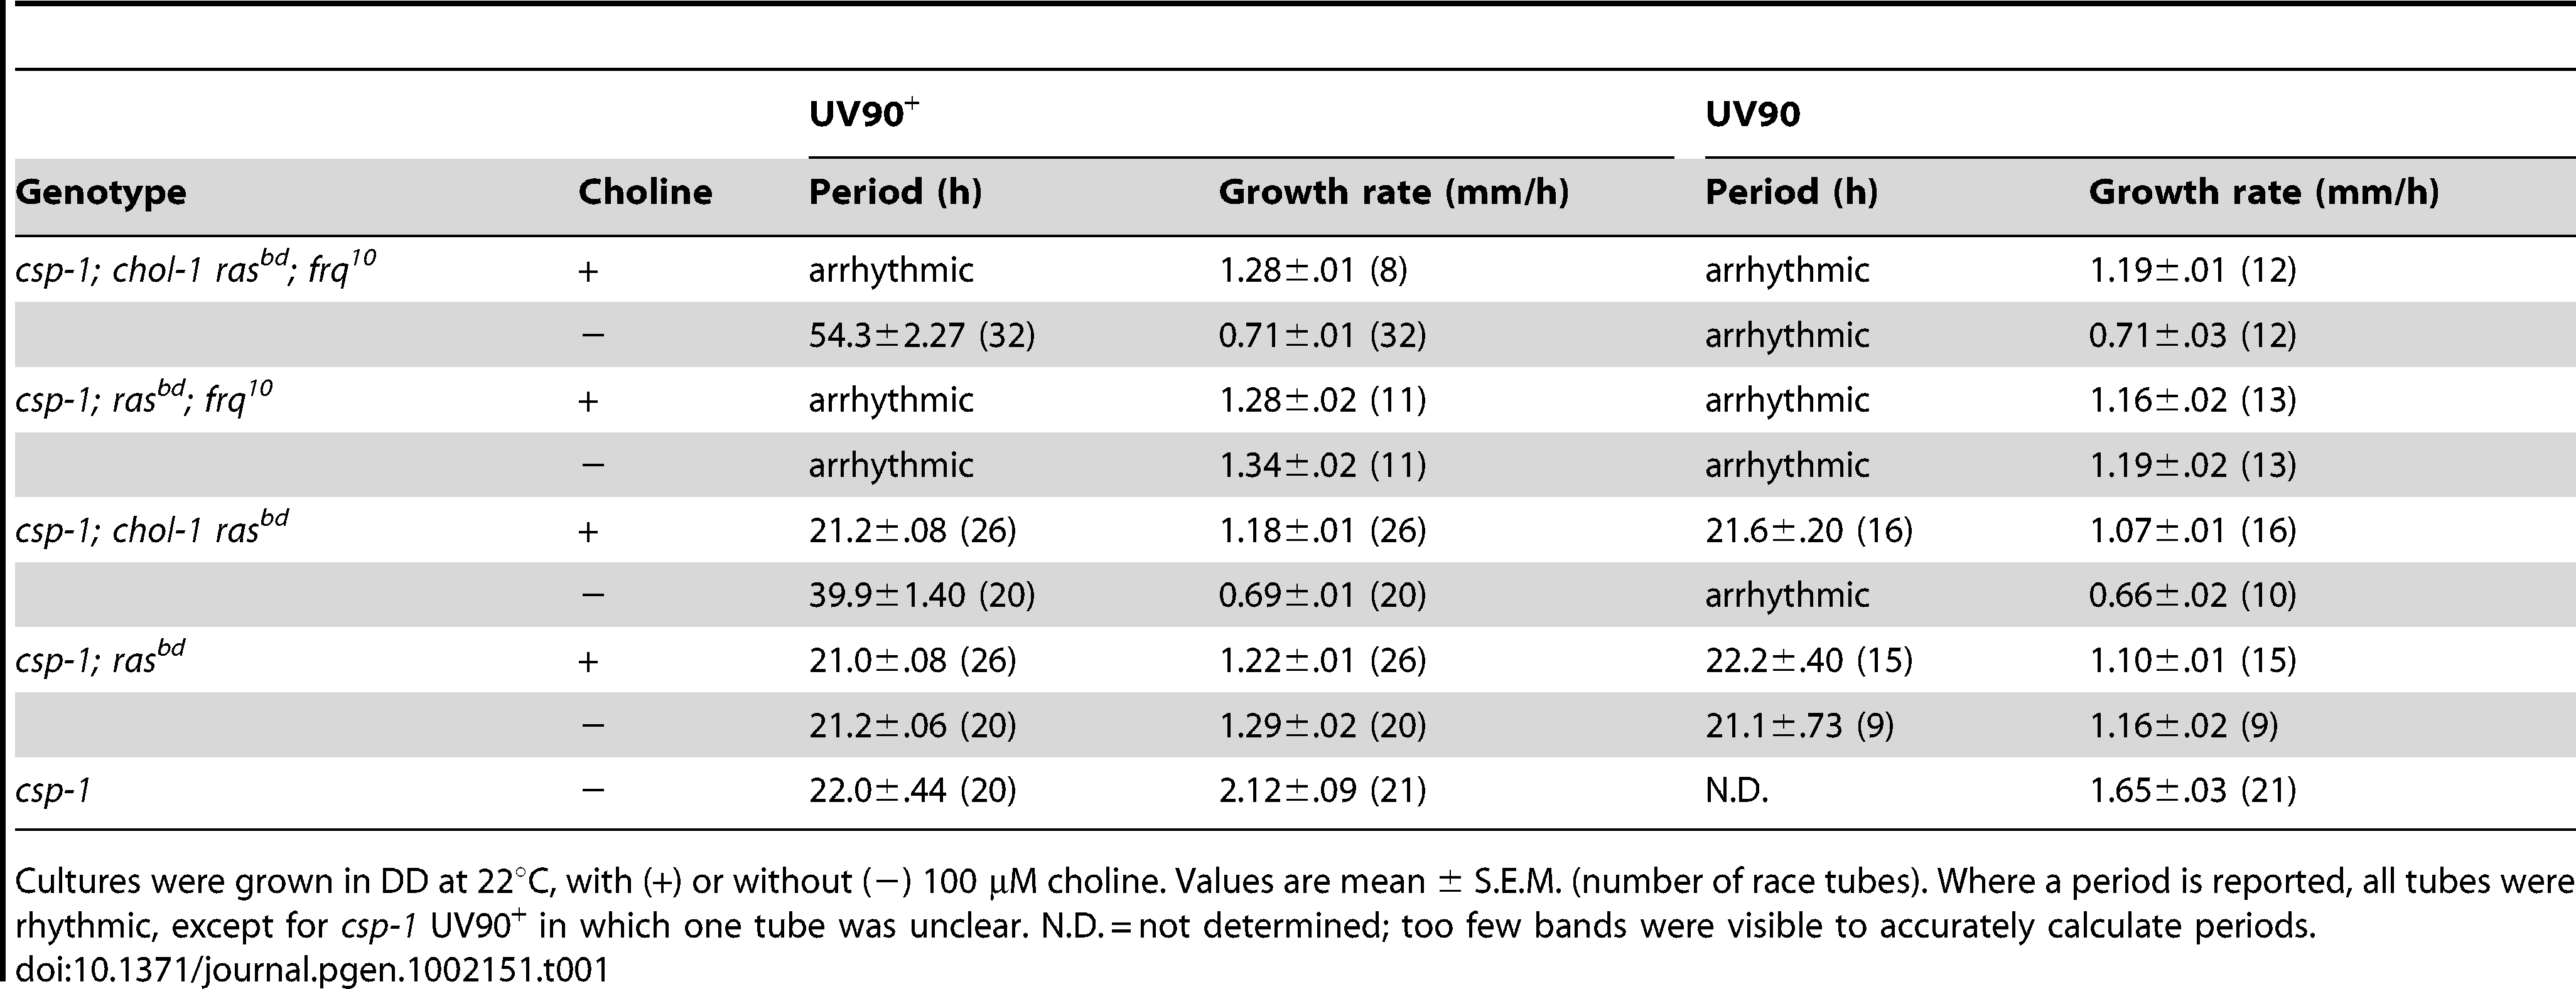 Periods and growth rates of UV90 wild-type and mutant strains.